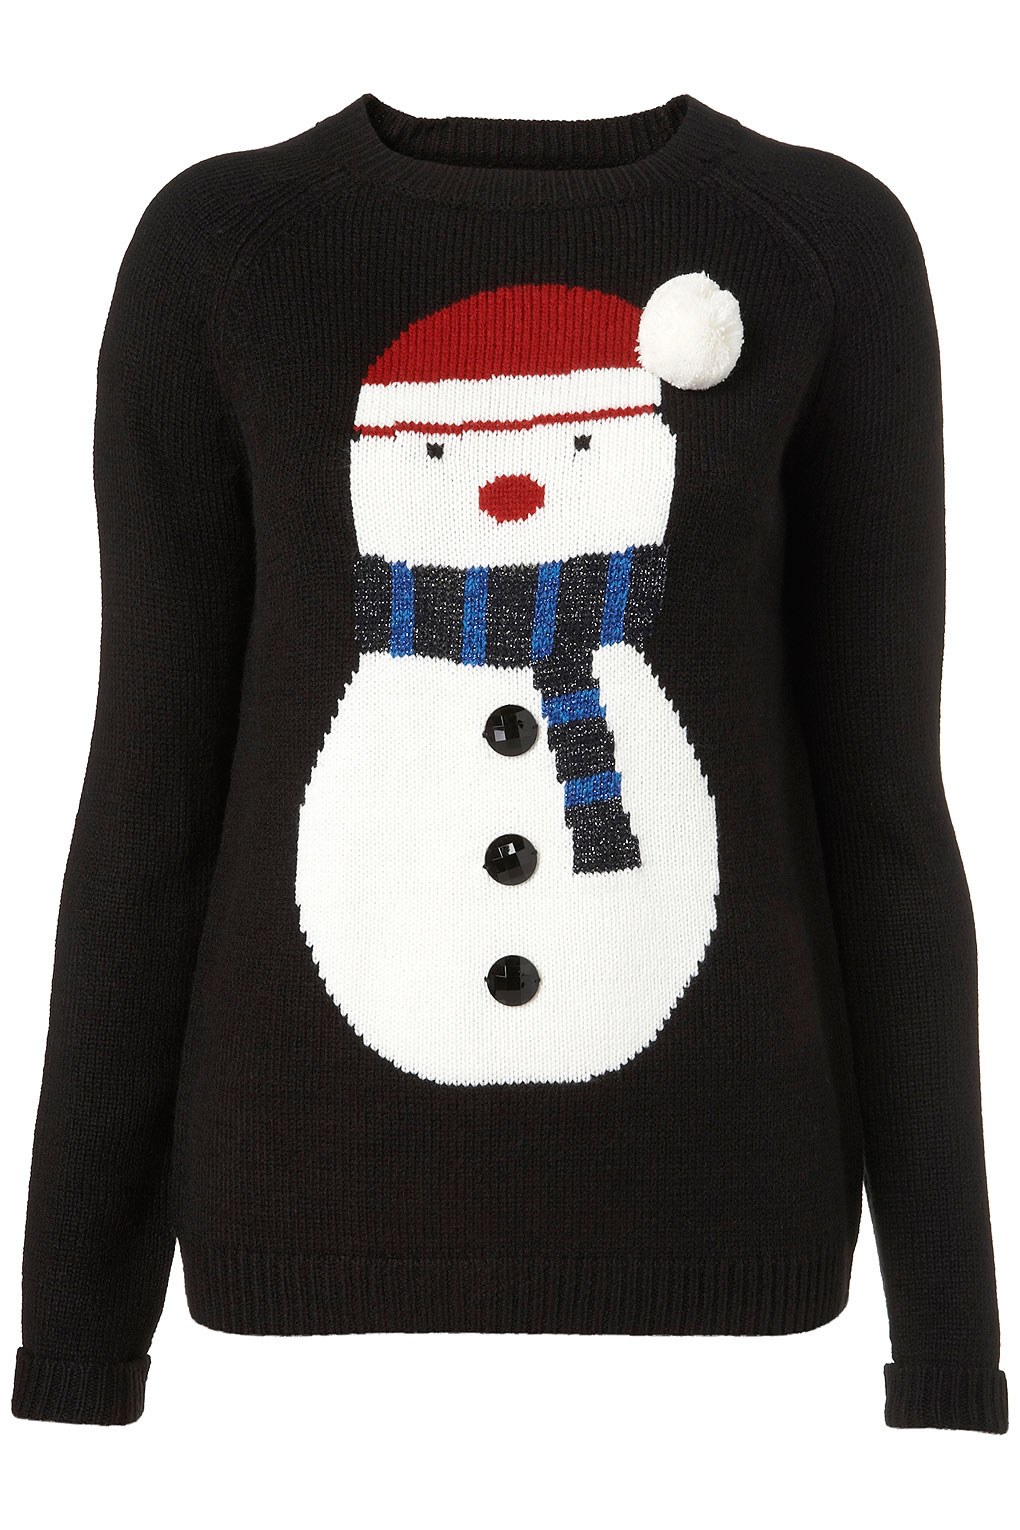 Cute Christmas Sweaters For Girls